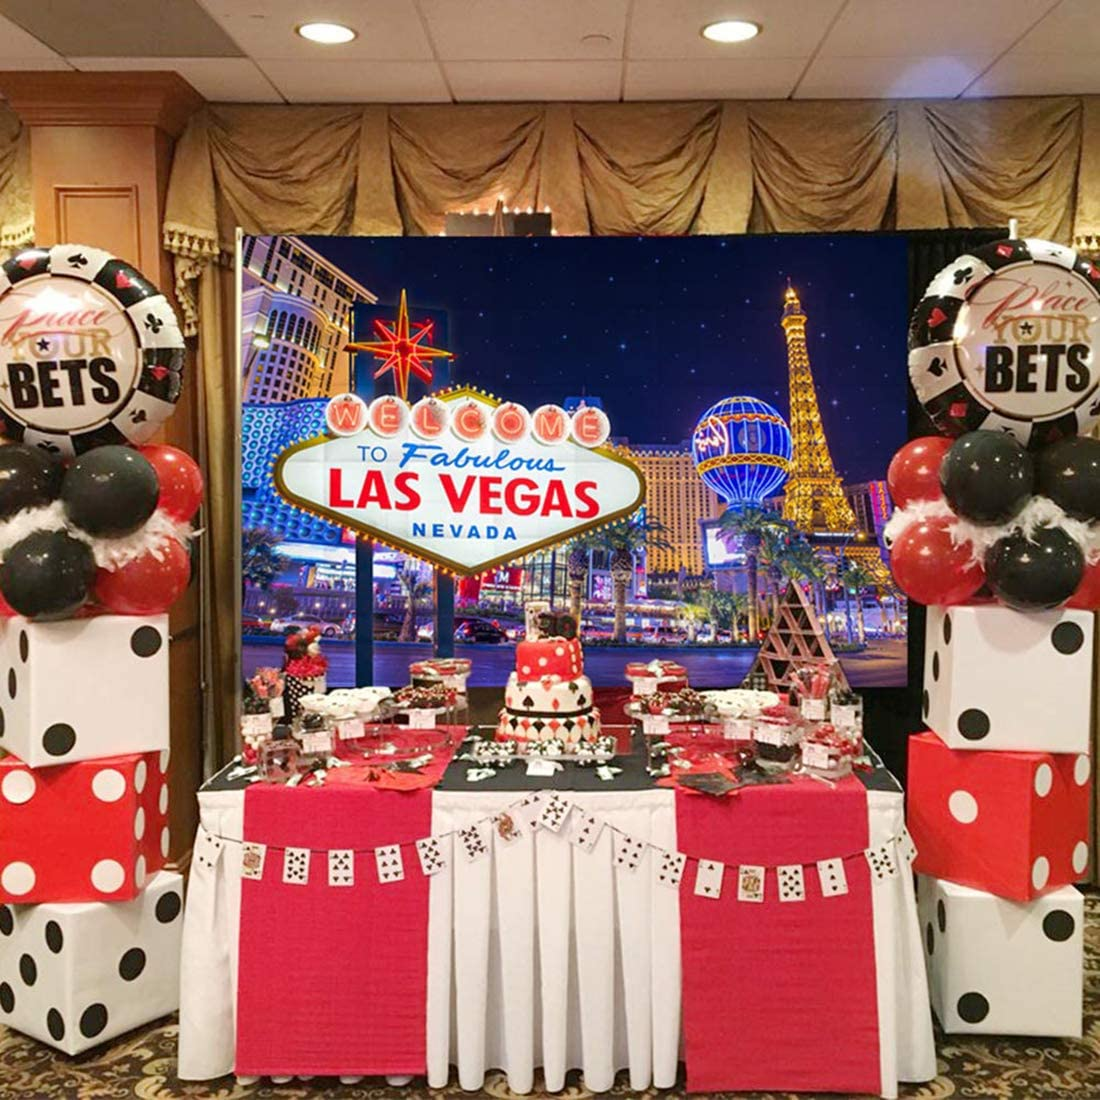 Allenjoy 8x8ft Las Vegas Night Backdrop Decorations Fabulous Casino Poker Movie Themed Vintage Costume Dress-up Birthday Prom Ceremony Supplies Favors Decor Banner Props Photography Studio Background